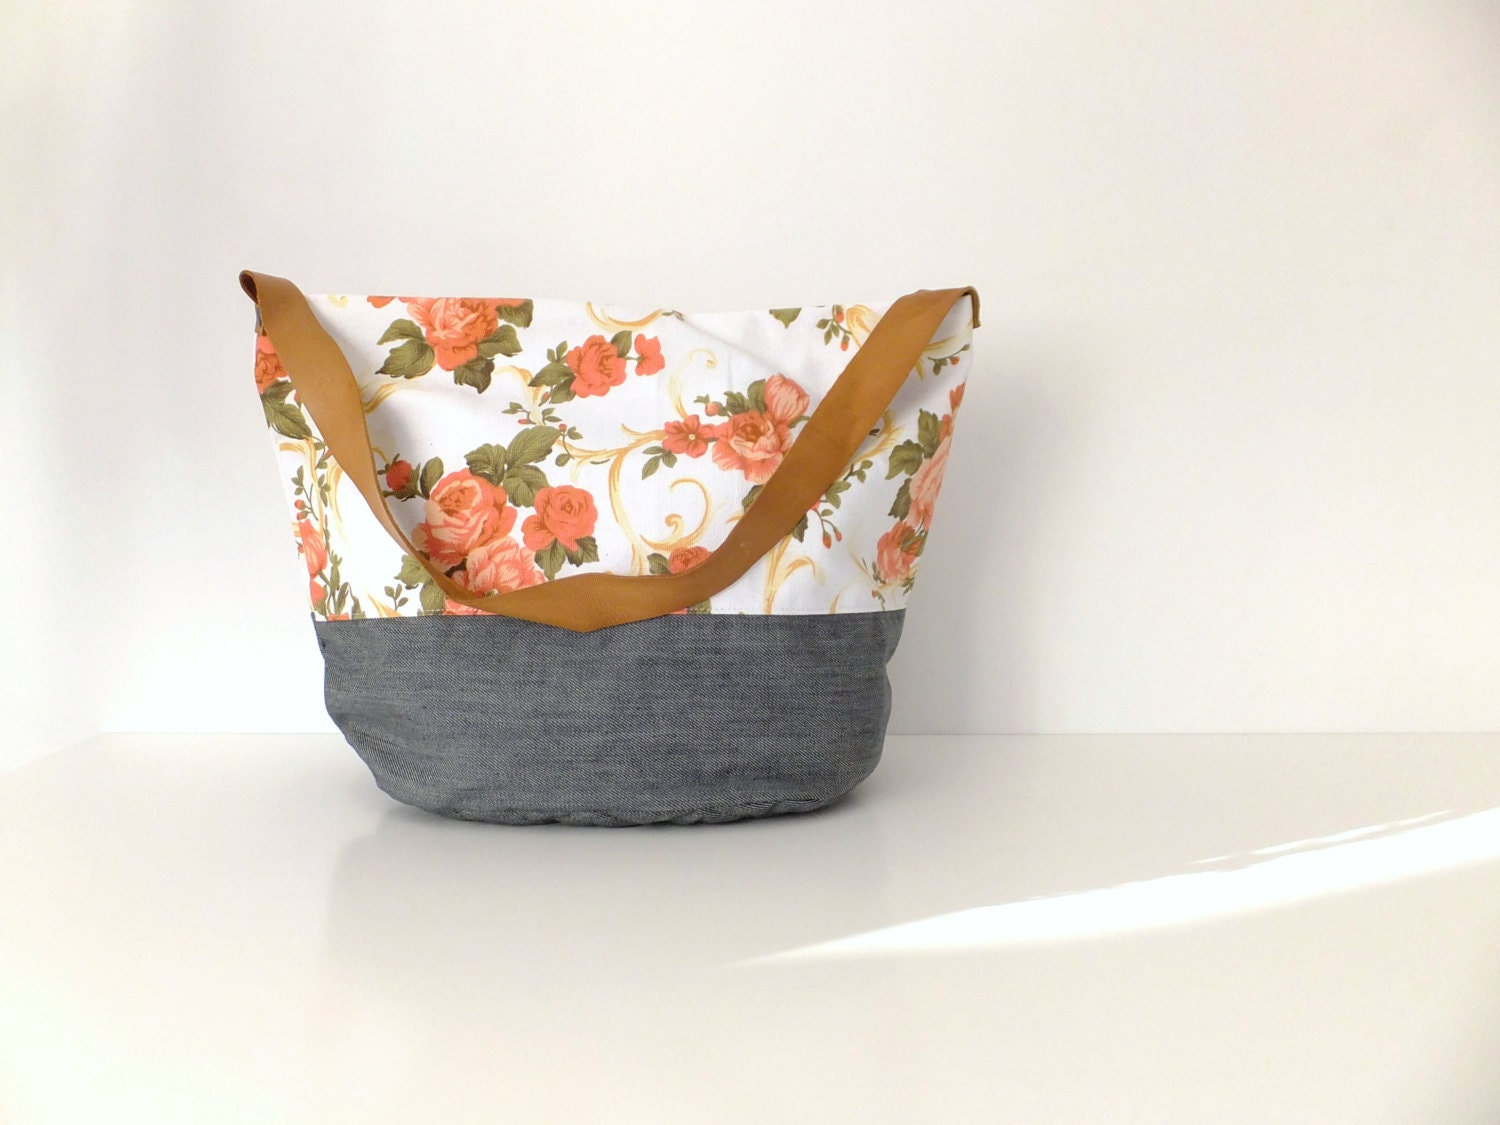 Flower summer bag / Diapers bag / Floral canvas tote / Modern fashion mom bag / Women tote summer bag / Canvas bag tote - LiduvinaDesign